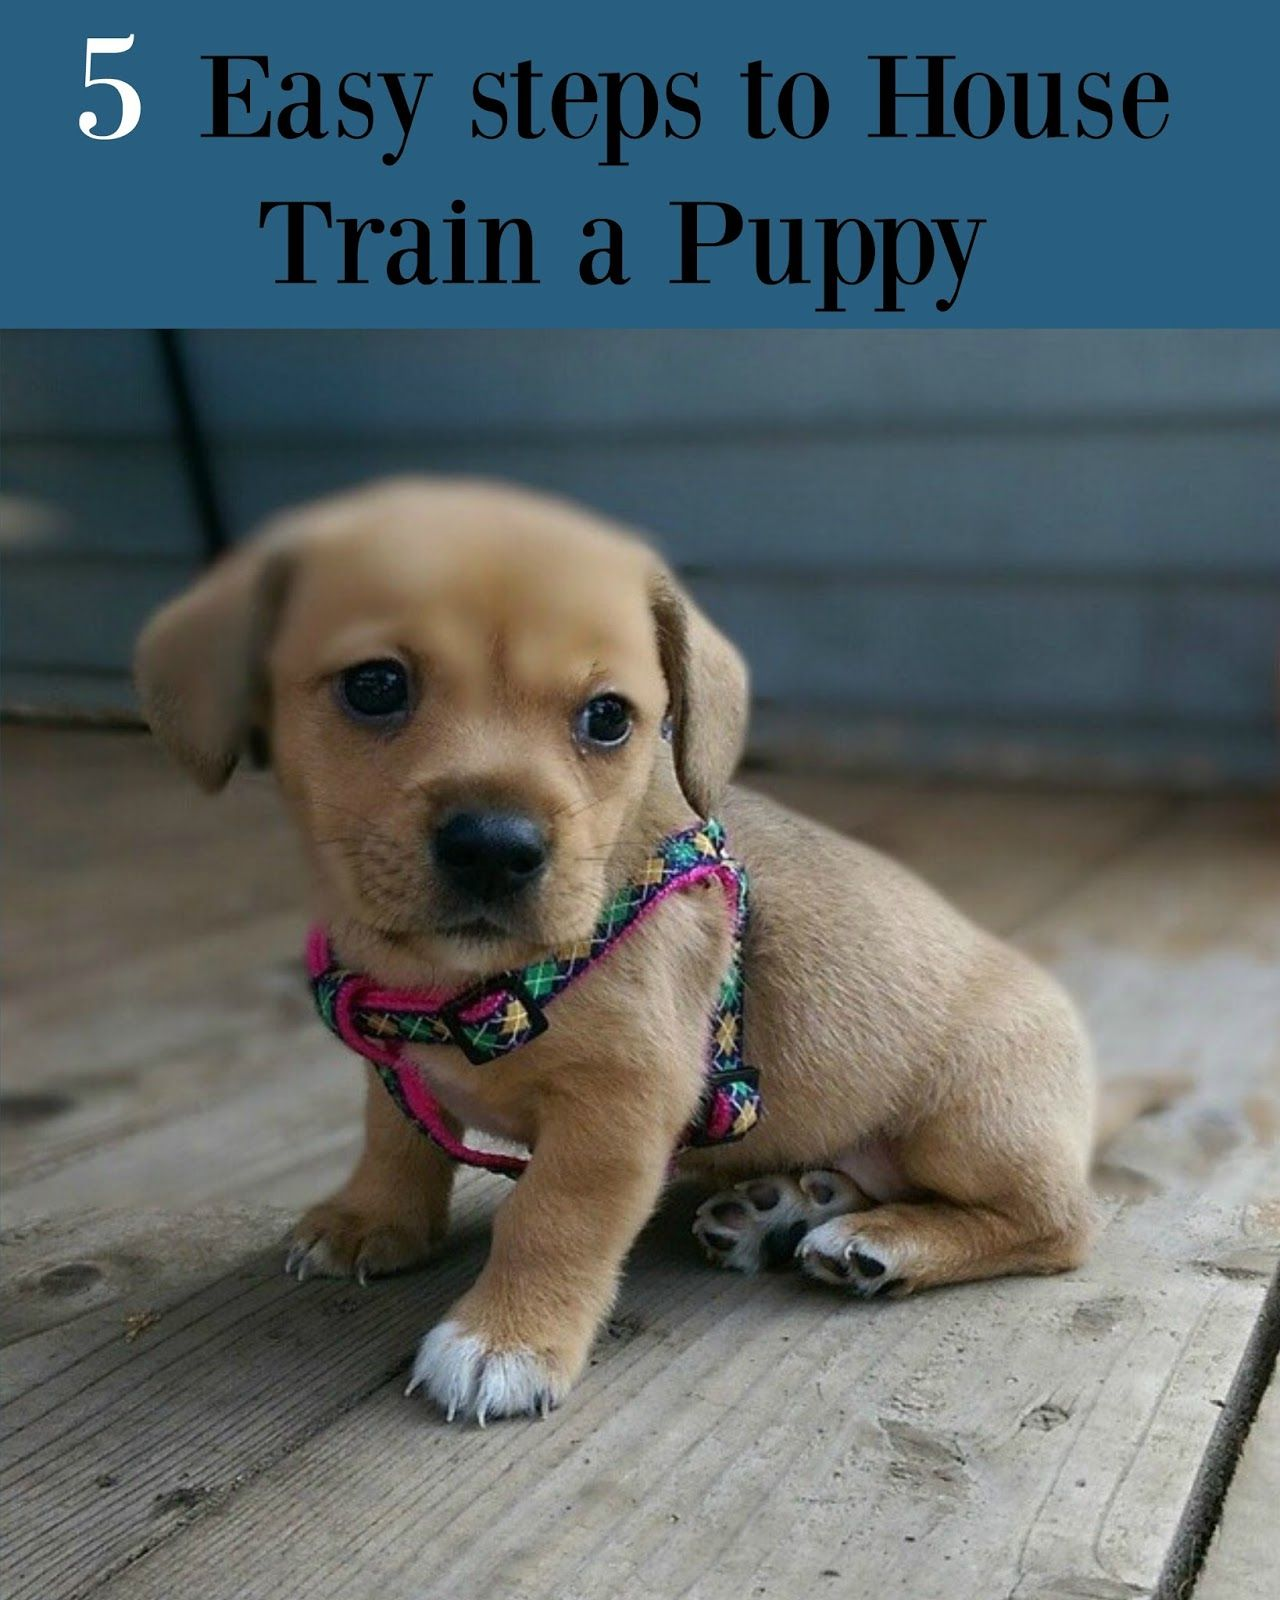 5 Easy steps to House Train a Puppy Puppies, Dog